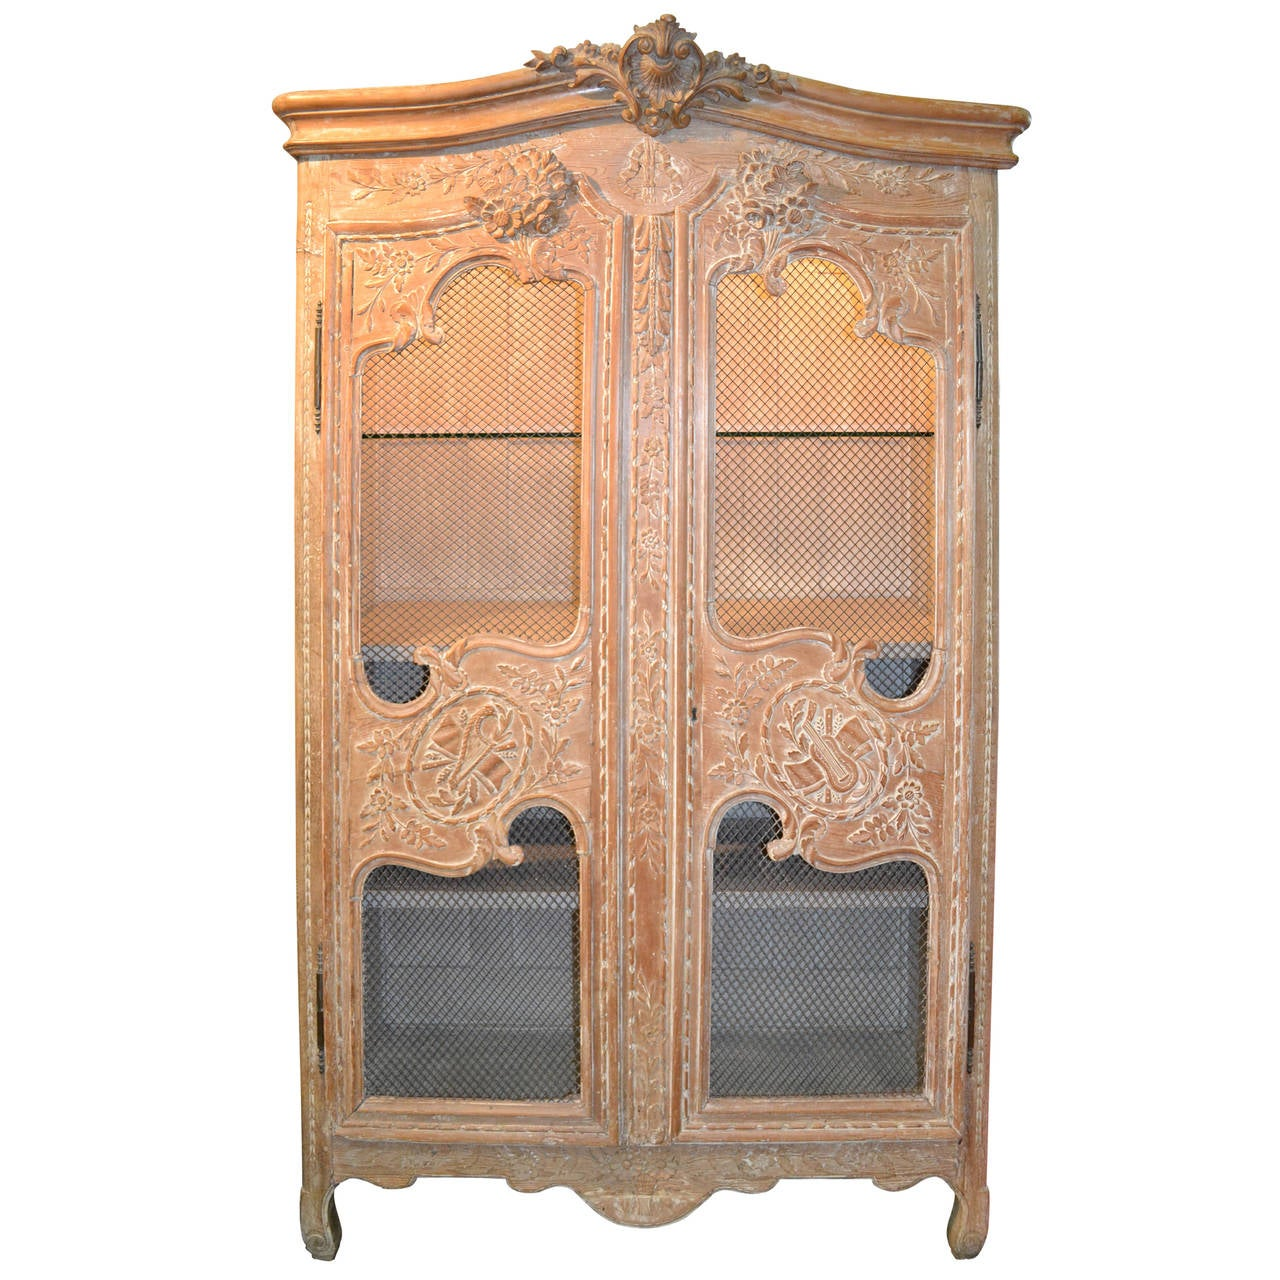 Pickled Carved Oak Normandy Armoire with Wire Scrim Doors for Display